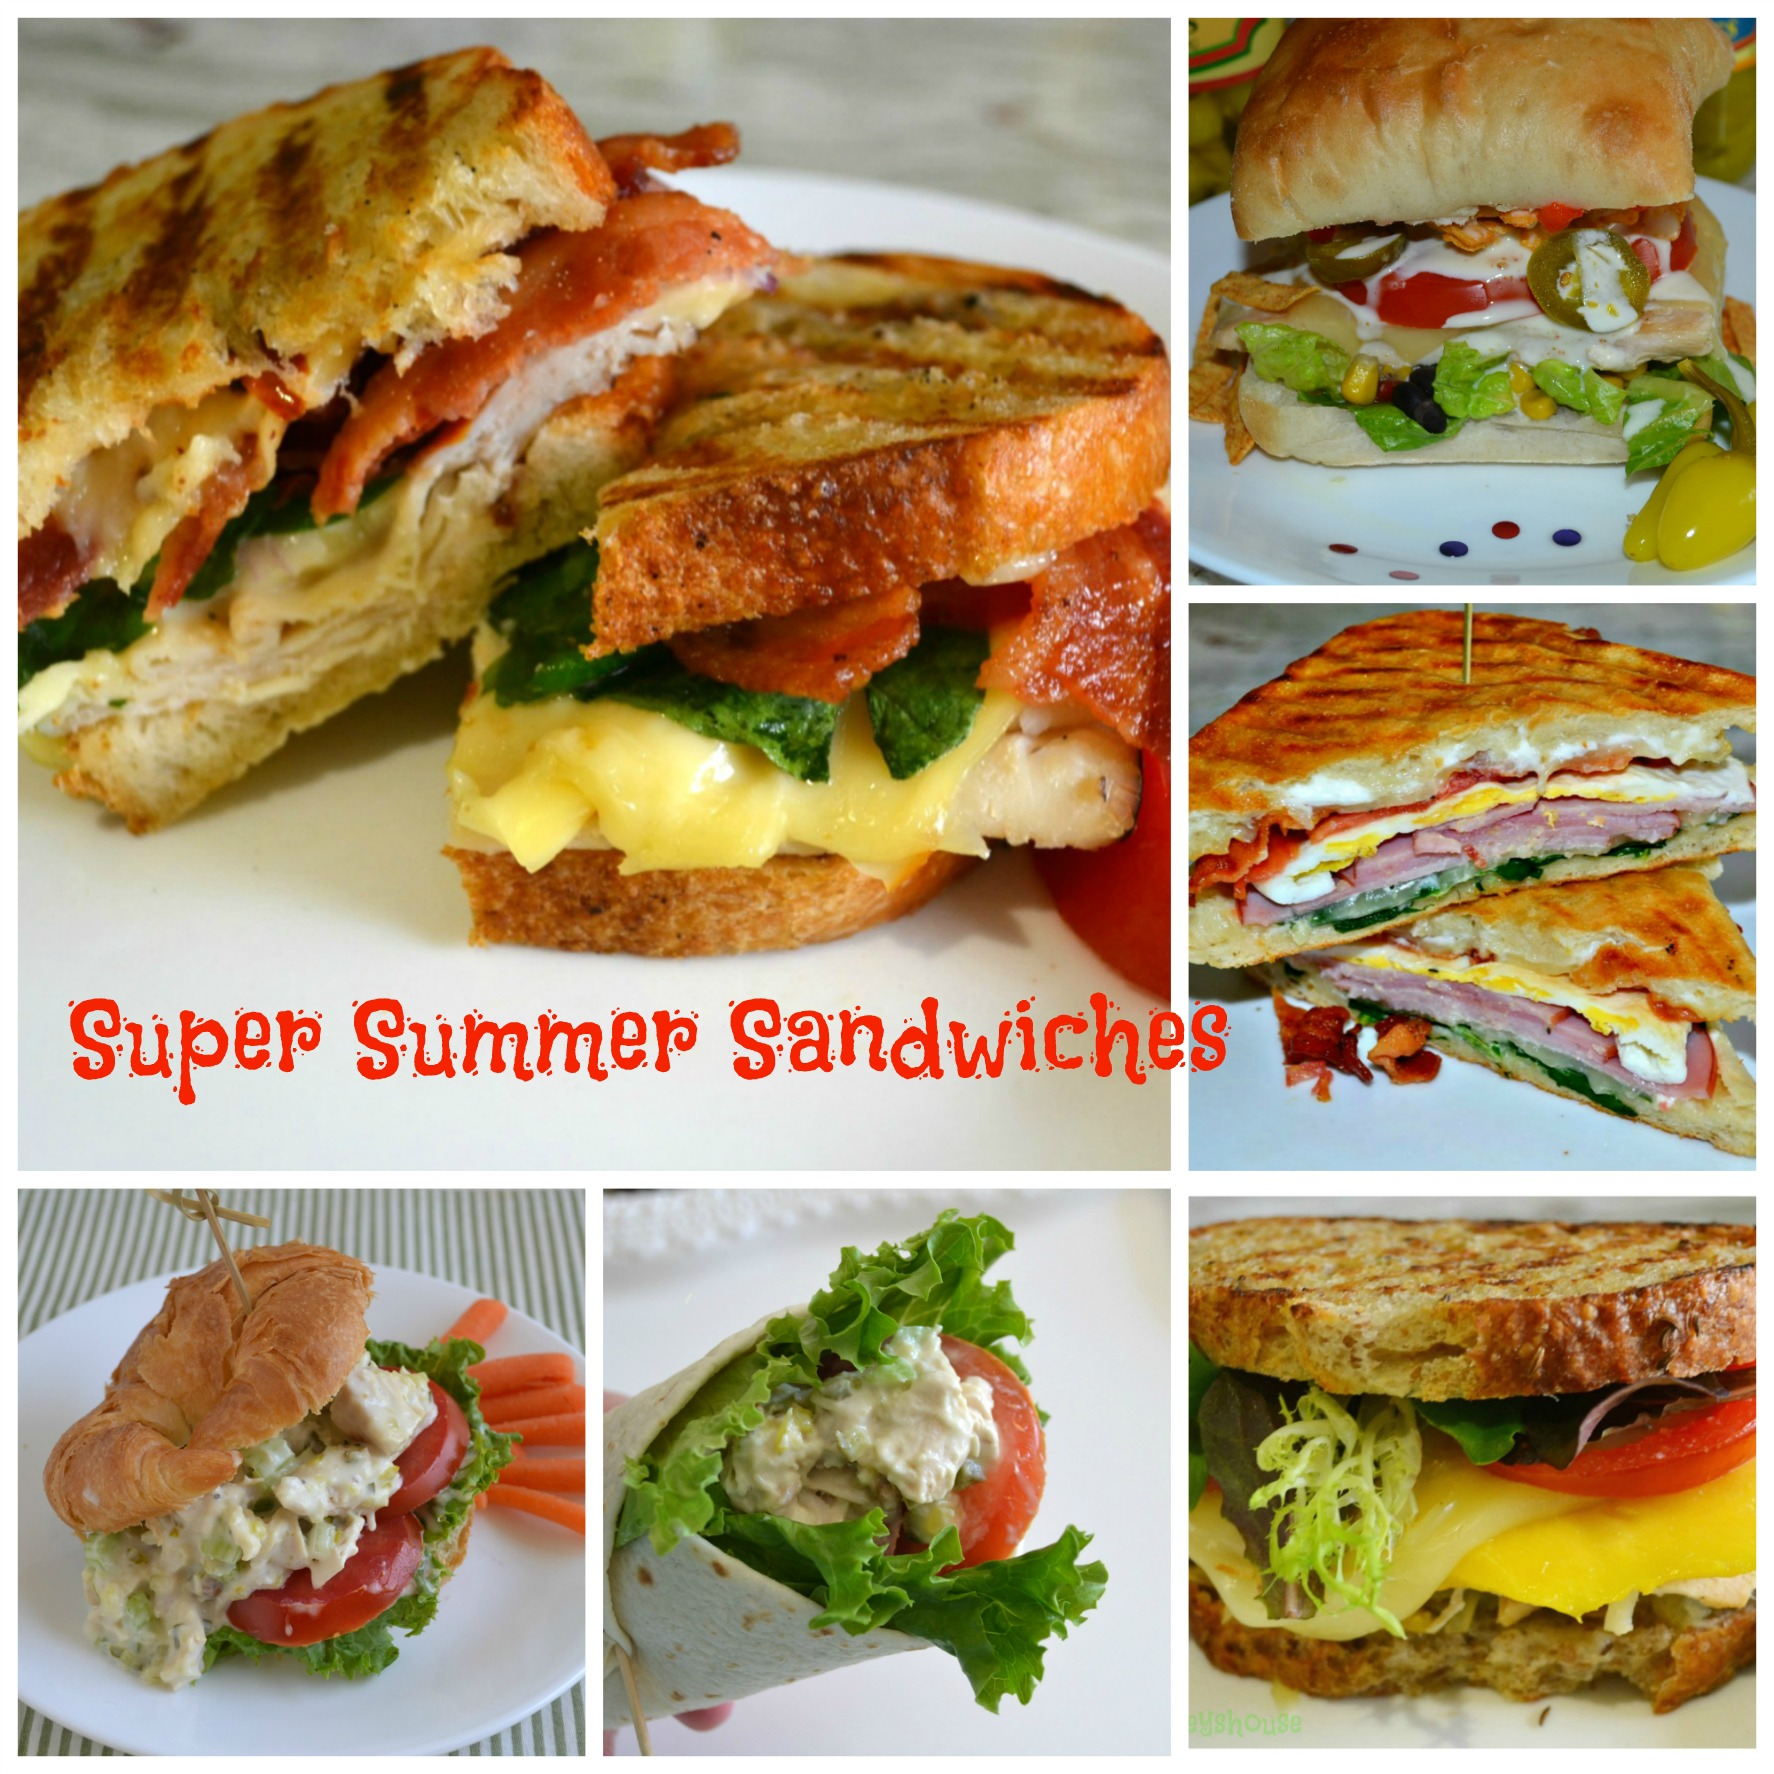 super sandwiches, chicken salad, turkey, bacon, ham, panini